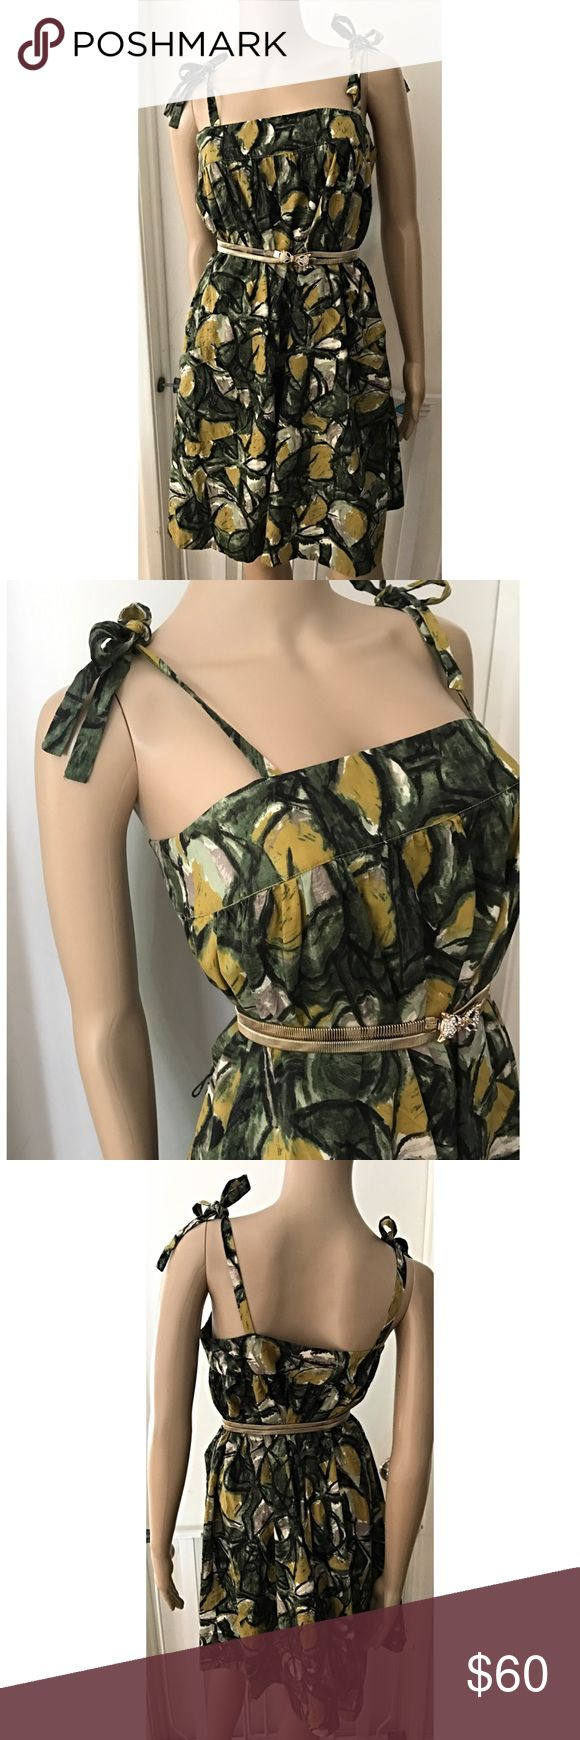 """NWT Anthro Fei Vintage Leaves Fruit Dress Gorgeous vintage inspired print dress from Anthropologie Fei in size 4 It's more Oversized style so, probably can fit a small to large size person. No flaws. Features leaves, lemon/pears looking prints, with adjustable thin straps on the shoulder that can be tied different ways, functional pockets on the bottom. Had belt loop but comes as is. Belt is not included. Measure about 25"""" length w/out straps, 16.5"""" pit to put, waist and hips are free.❌No…"""